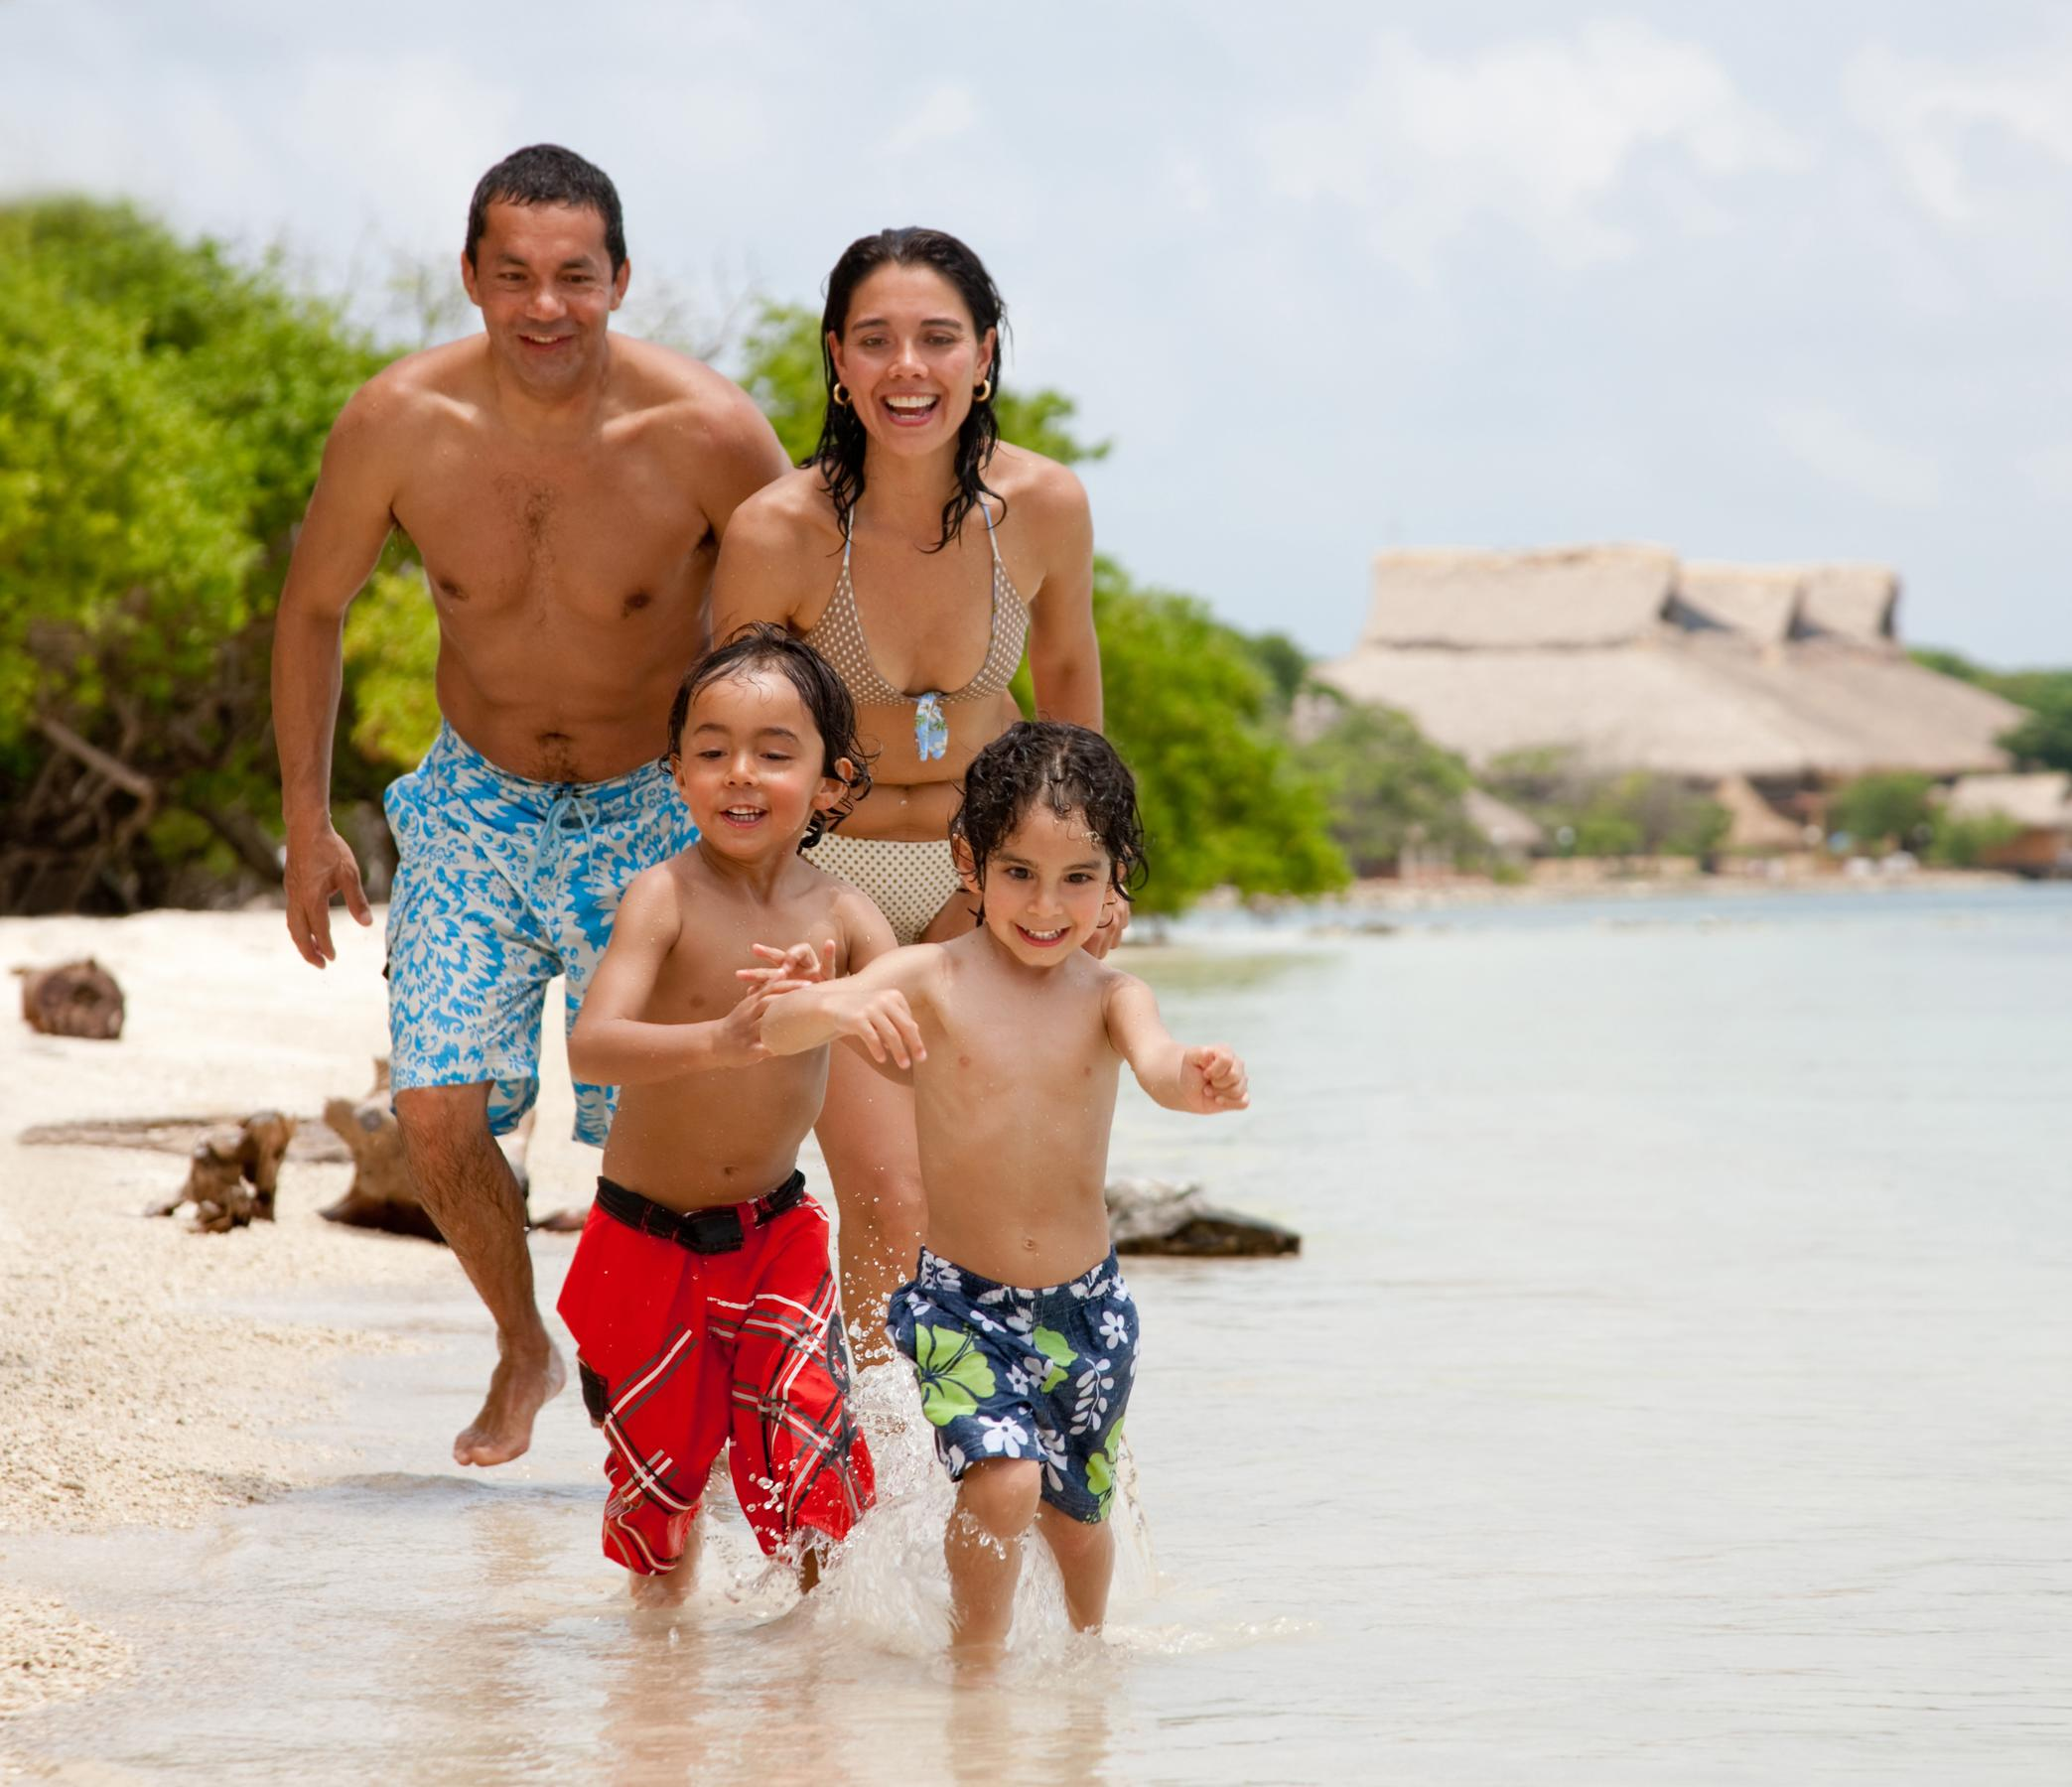 How Much Does A Family Vacation To The Caribbean Cost?